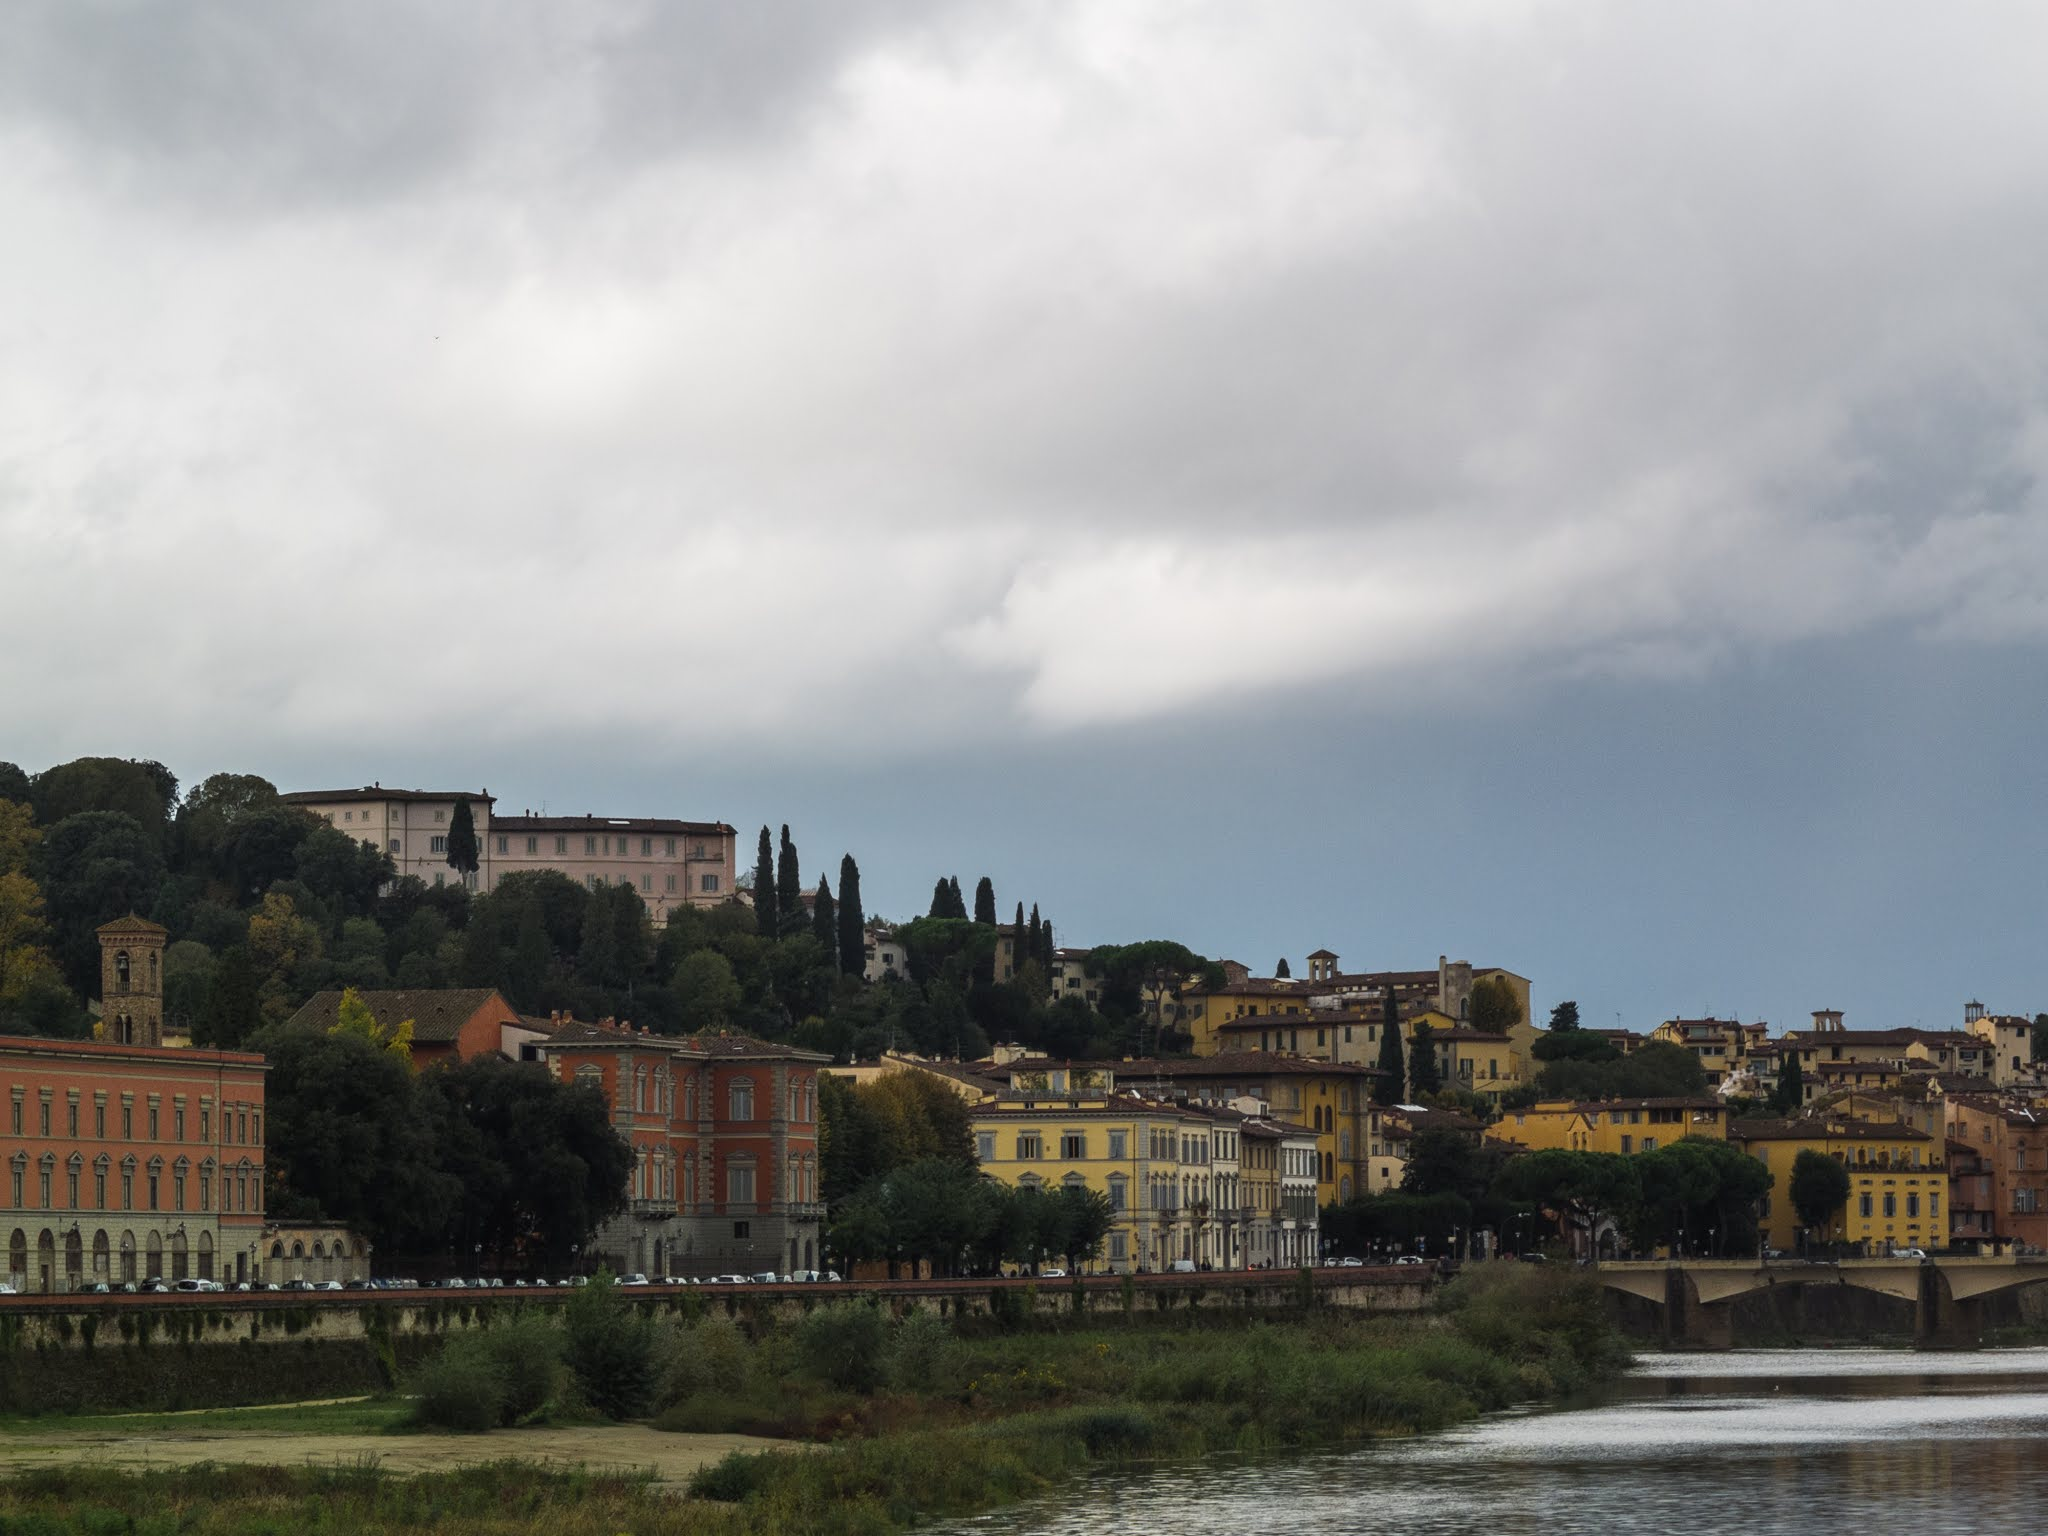 Landscape of Florence on a cloudy day with river Arno in the foreground.